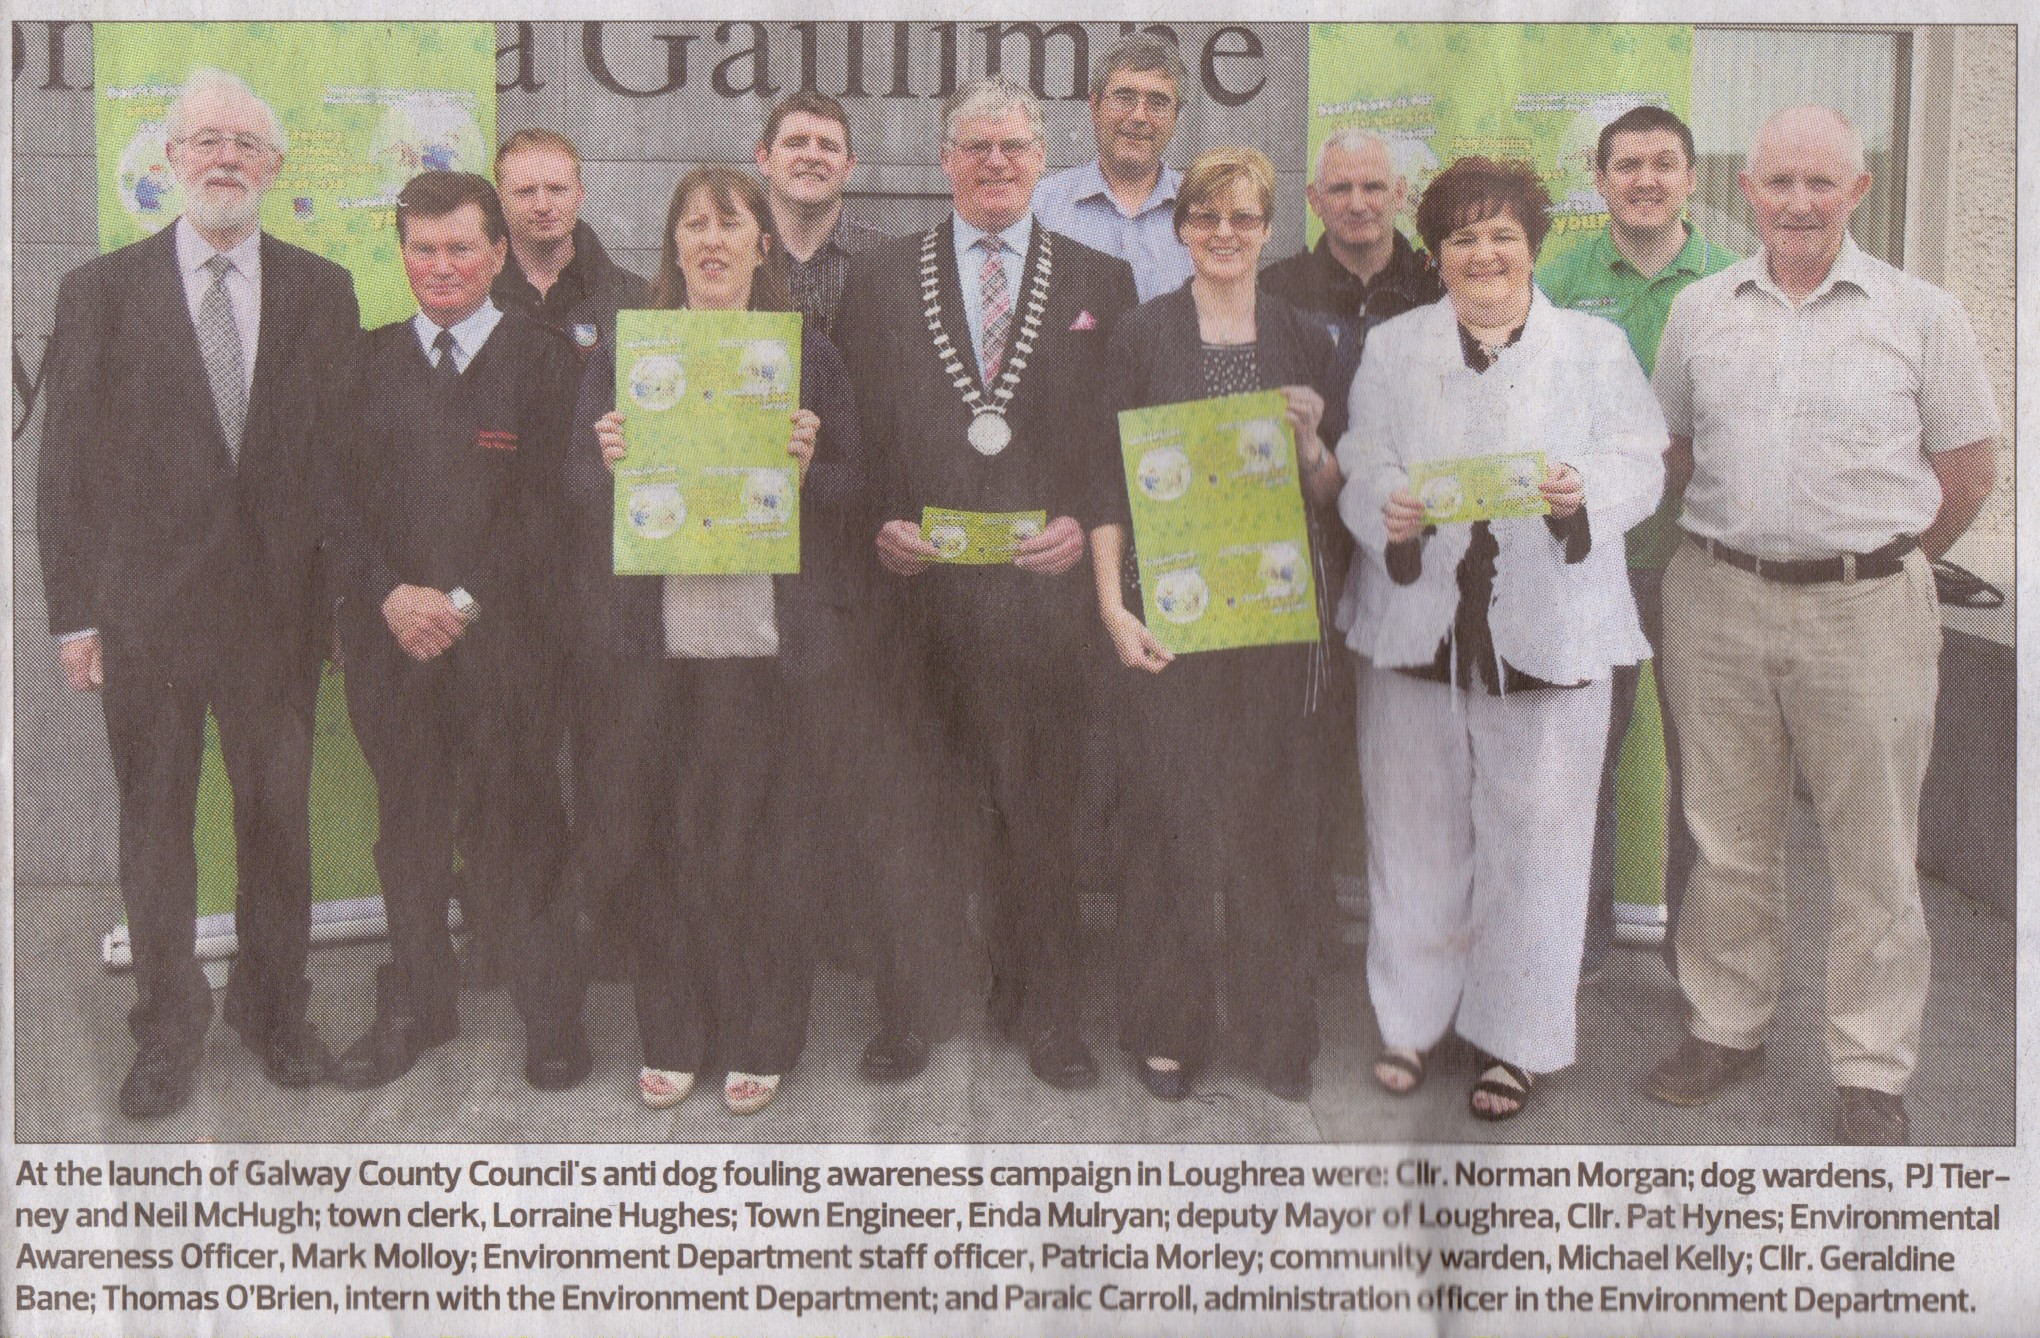 Loughrea Anti dog fouling awareness campaign